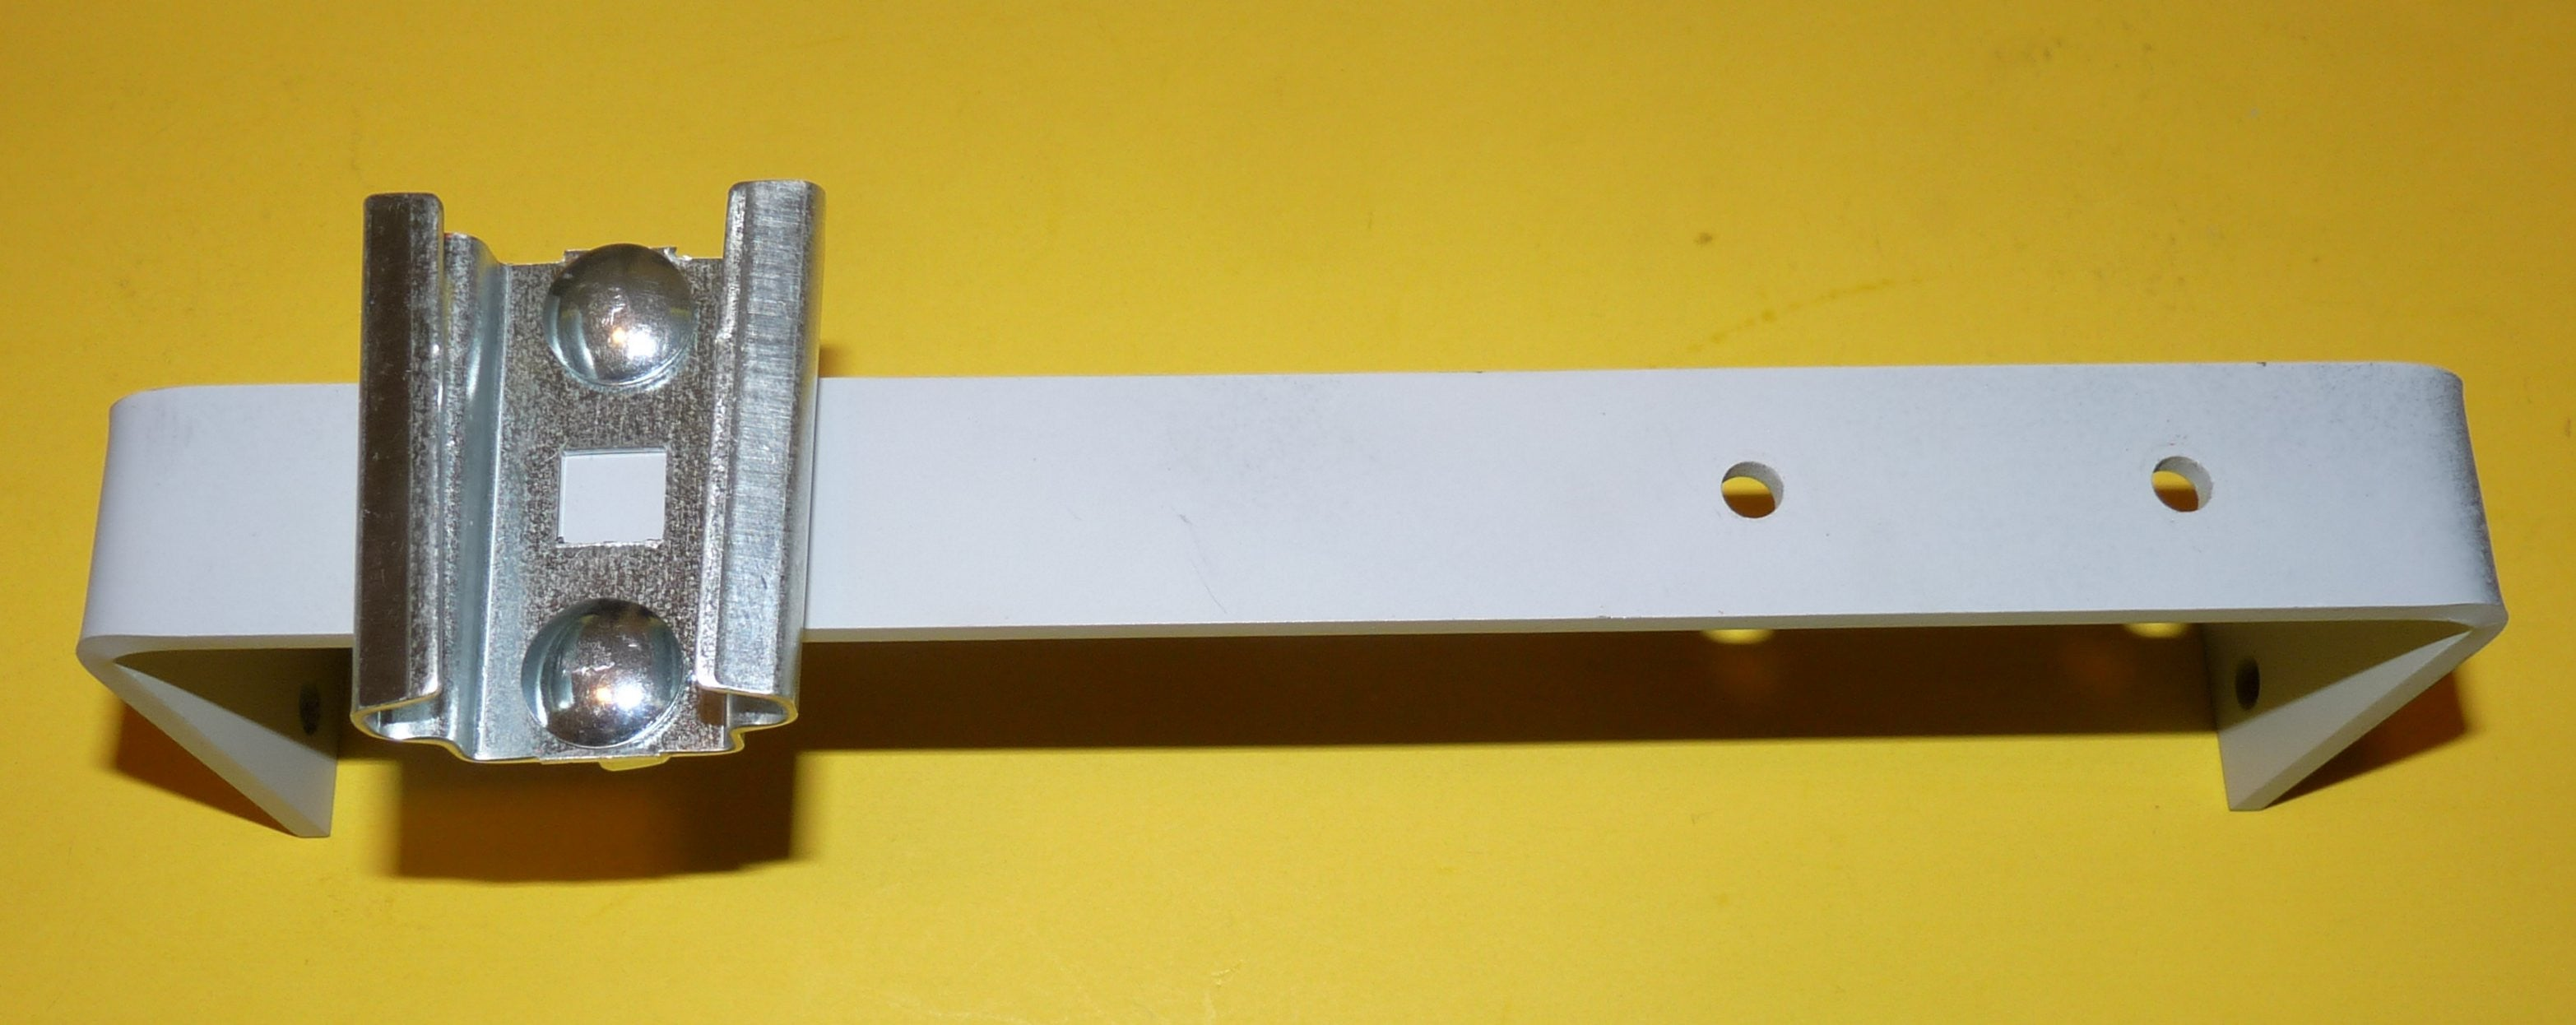 Category III 3 Point Hitch Leveling Handle Oliver 1755 1855 1955 Tractors